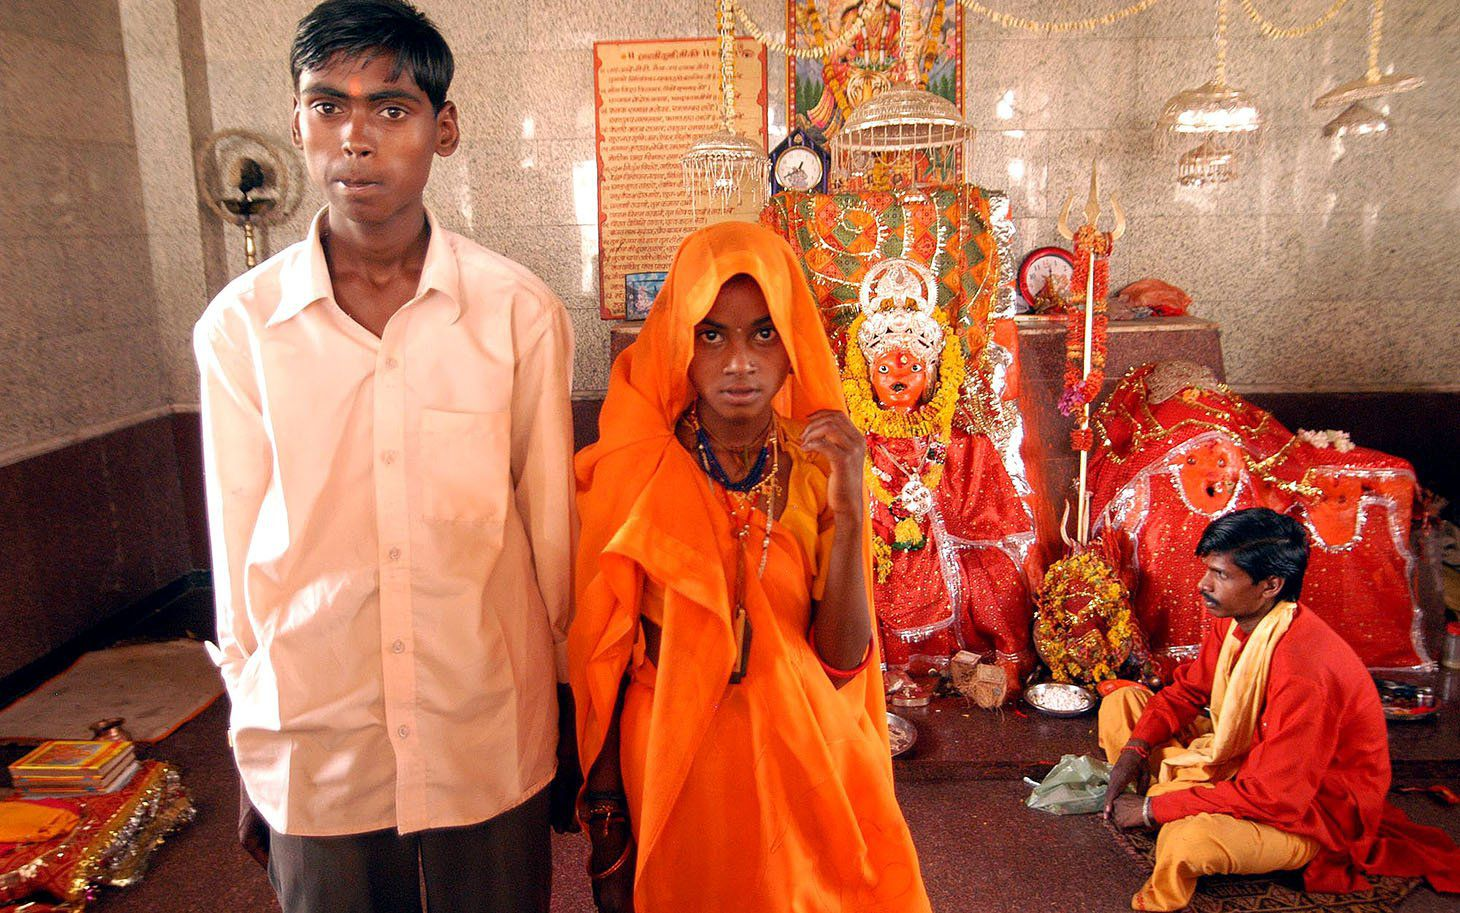 Eleven-year-old Anita, standing right, and her groom Birbal, 16, pose for a photograph after their marriage, as a priest looks on at Jalpa Mata temple in Rajgarh, about 155 kilometers (96 miles), northwest of Bhopal, India, Sunday, April, 30, 2006. Ignoring laws that ban child marriages, hundreds of children, some as young as seven years old, were married in a centuries-old custom across central and western India this week, according to news reports. (AP Photo/Prakash Hatvalne)